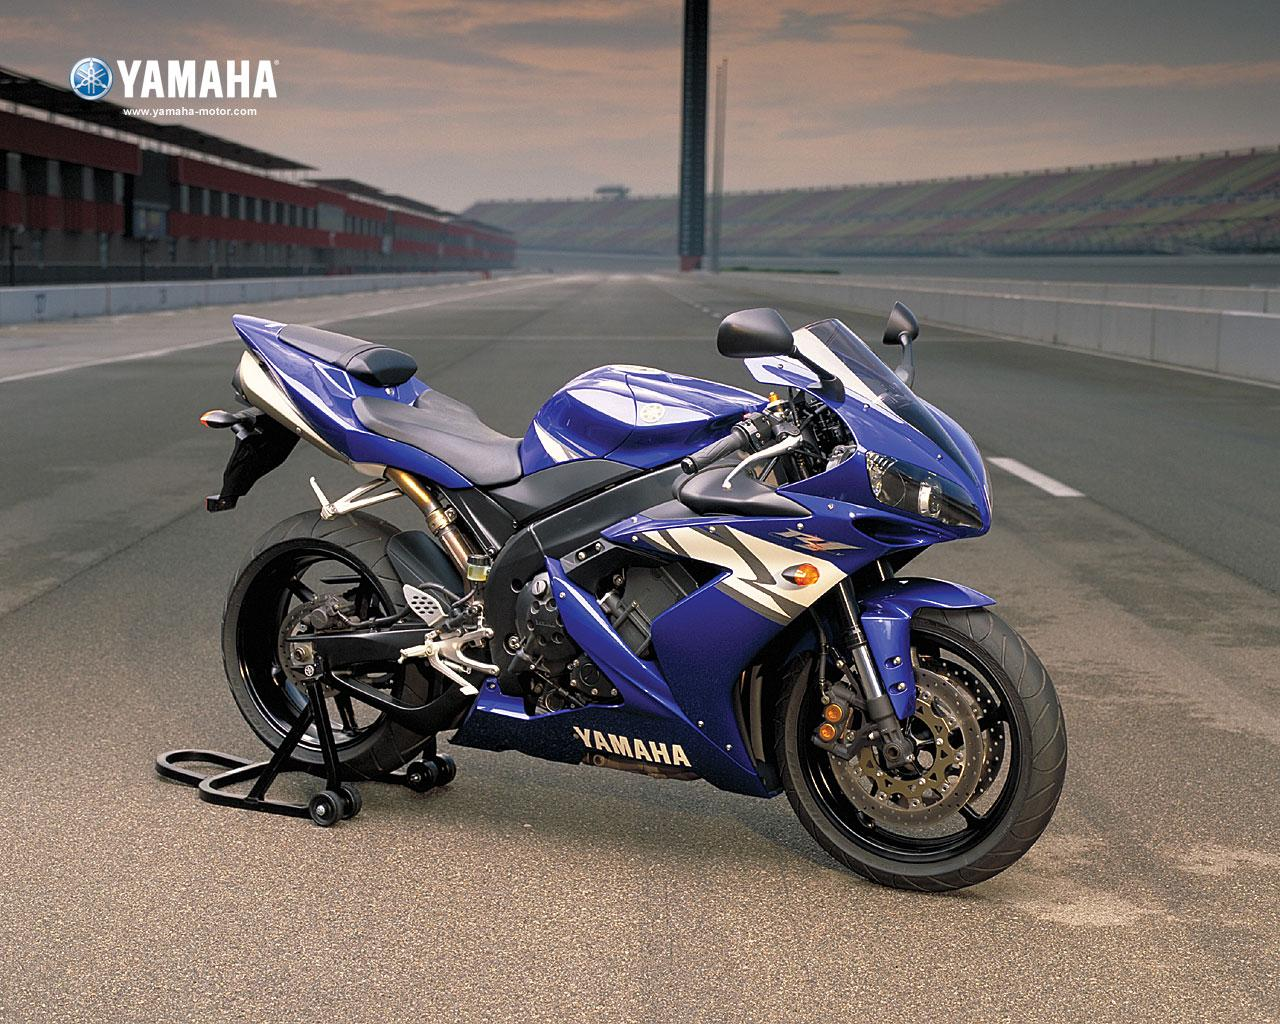 Yamaha YZF R1 picture 21785 Yamaha photo gallery CarsBasecom 1280x1024